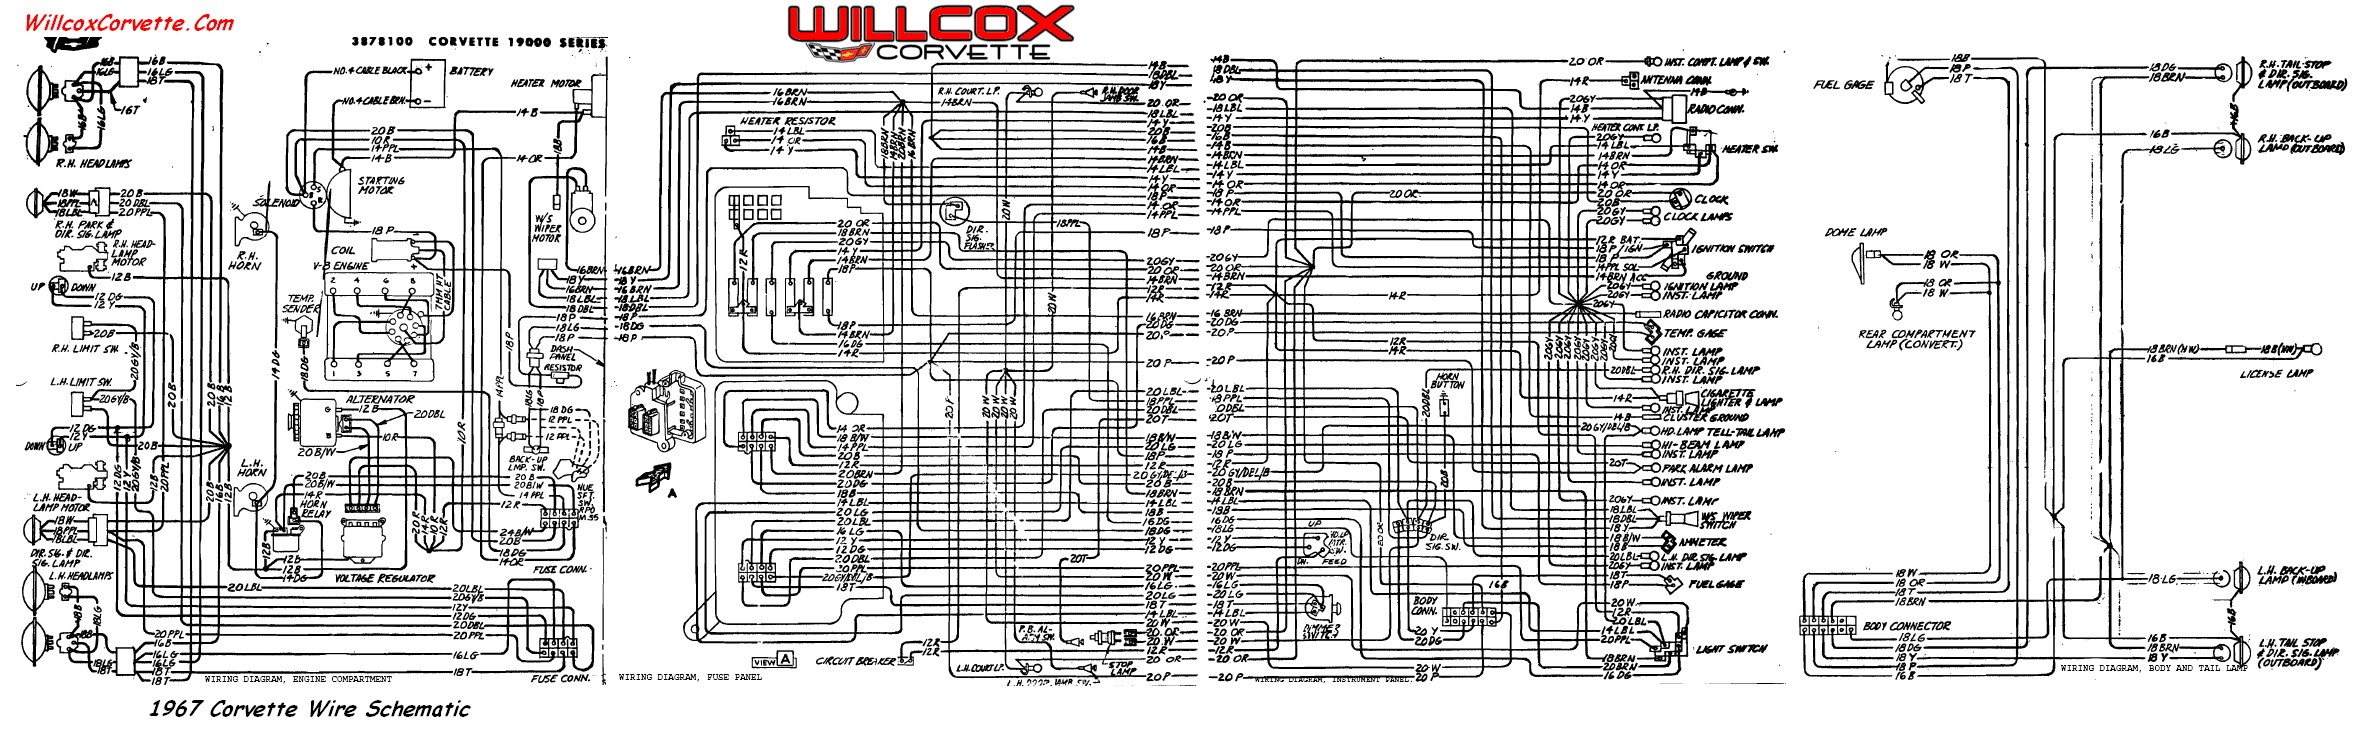 1966 corvette dash wiring diagram data circuit diagram u2022 rh labloom co